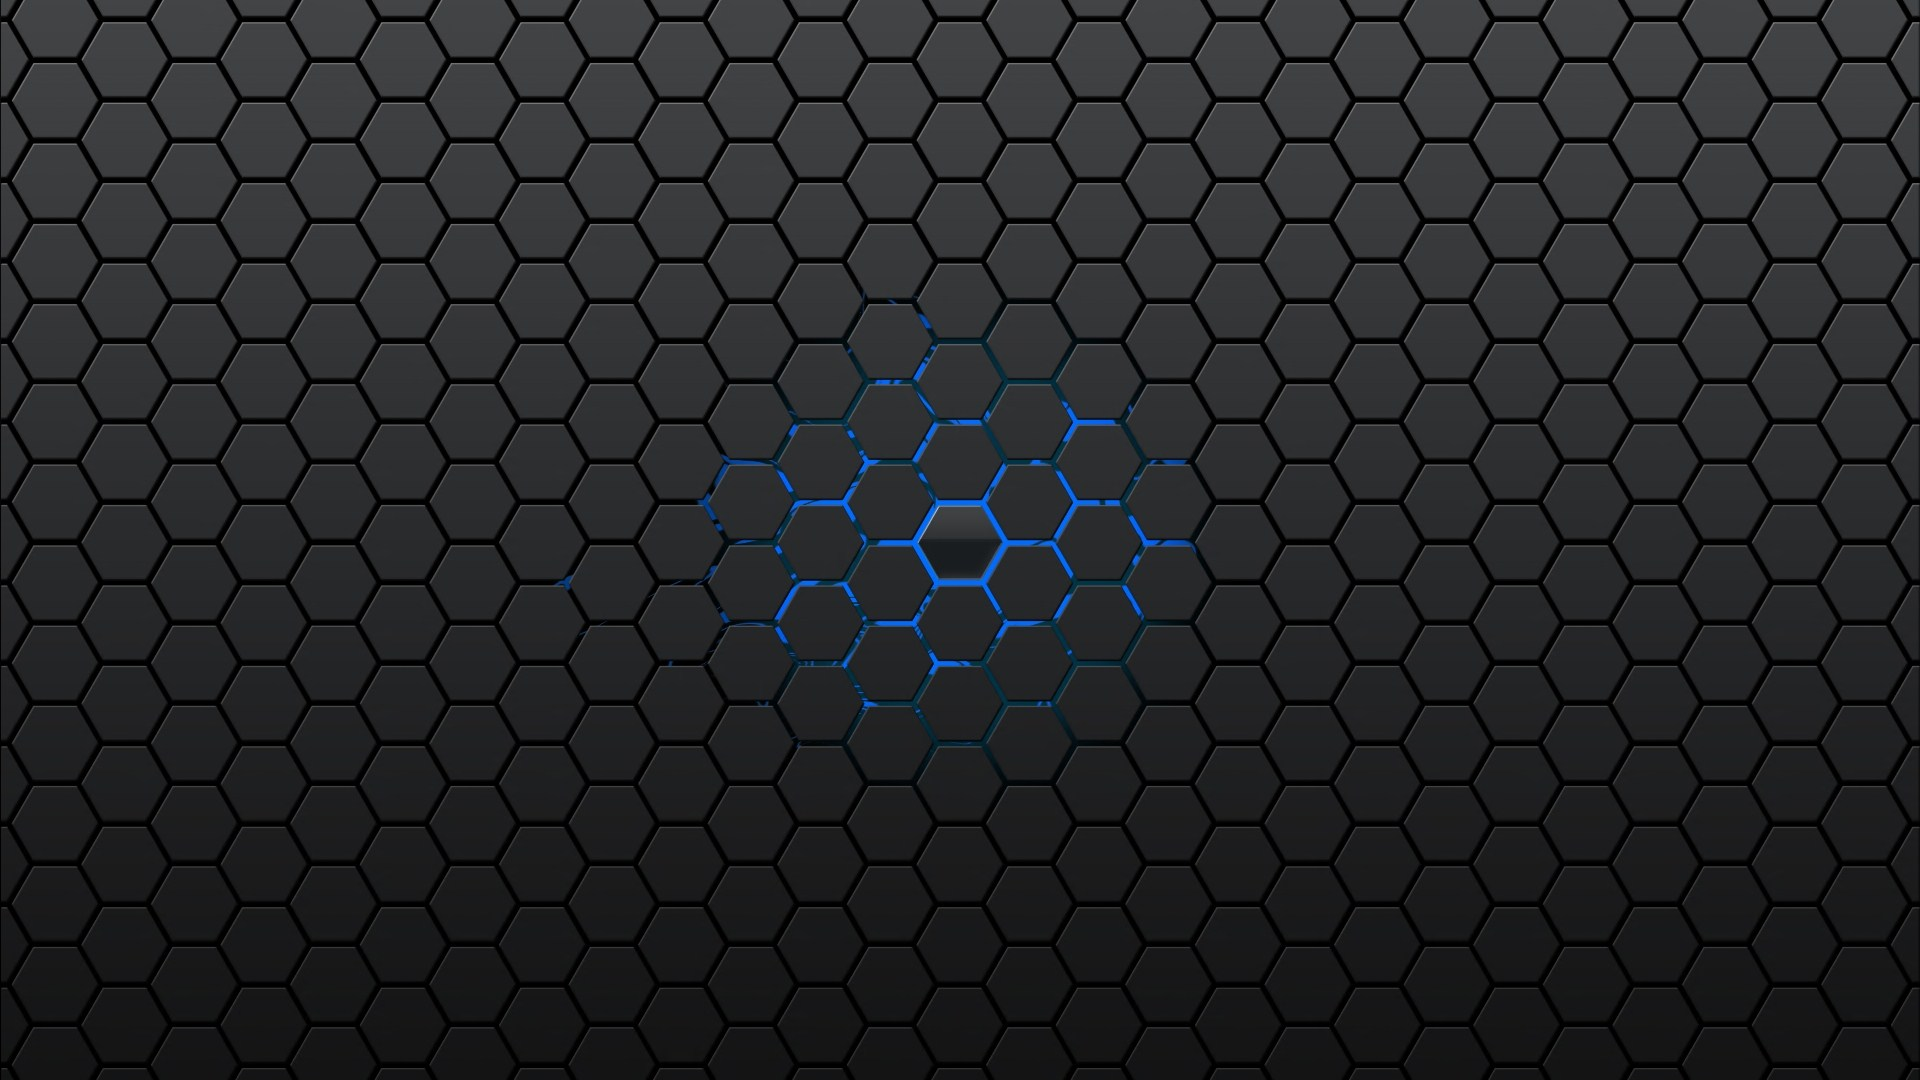 Honeycomb Grey pattern wallpapers Wide Screen Wallpaper 1080p2K4K 1920x1080